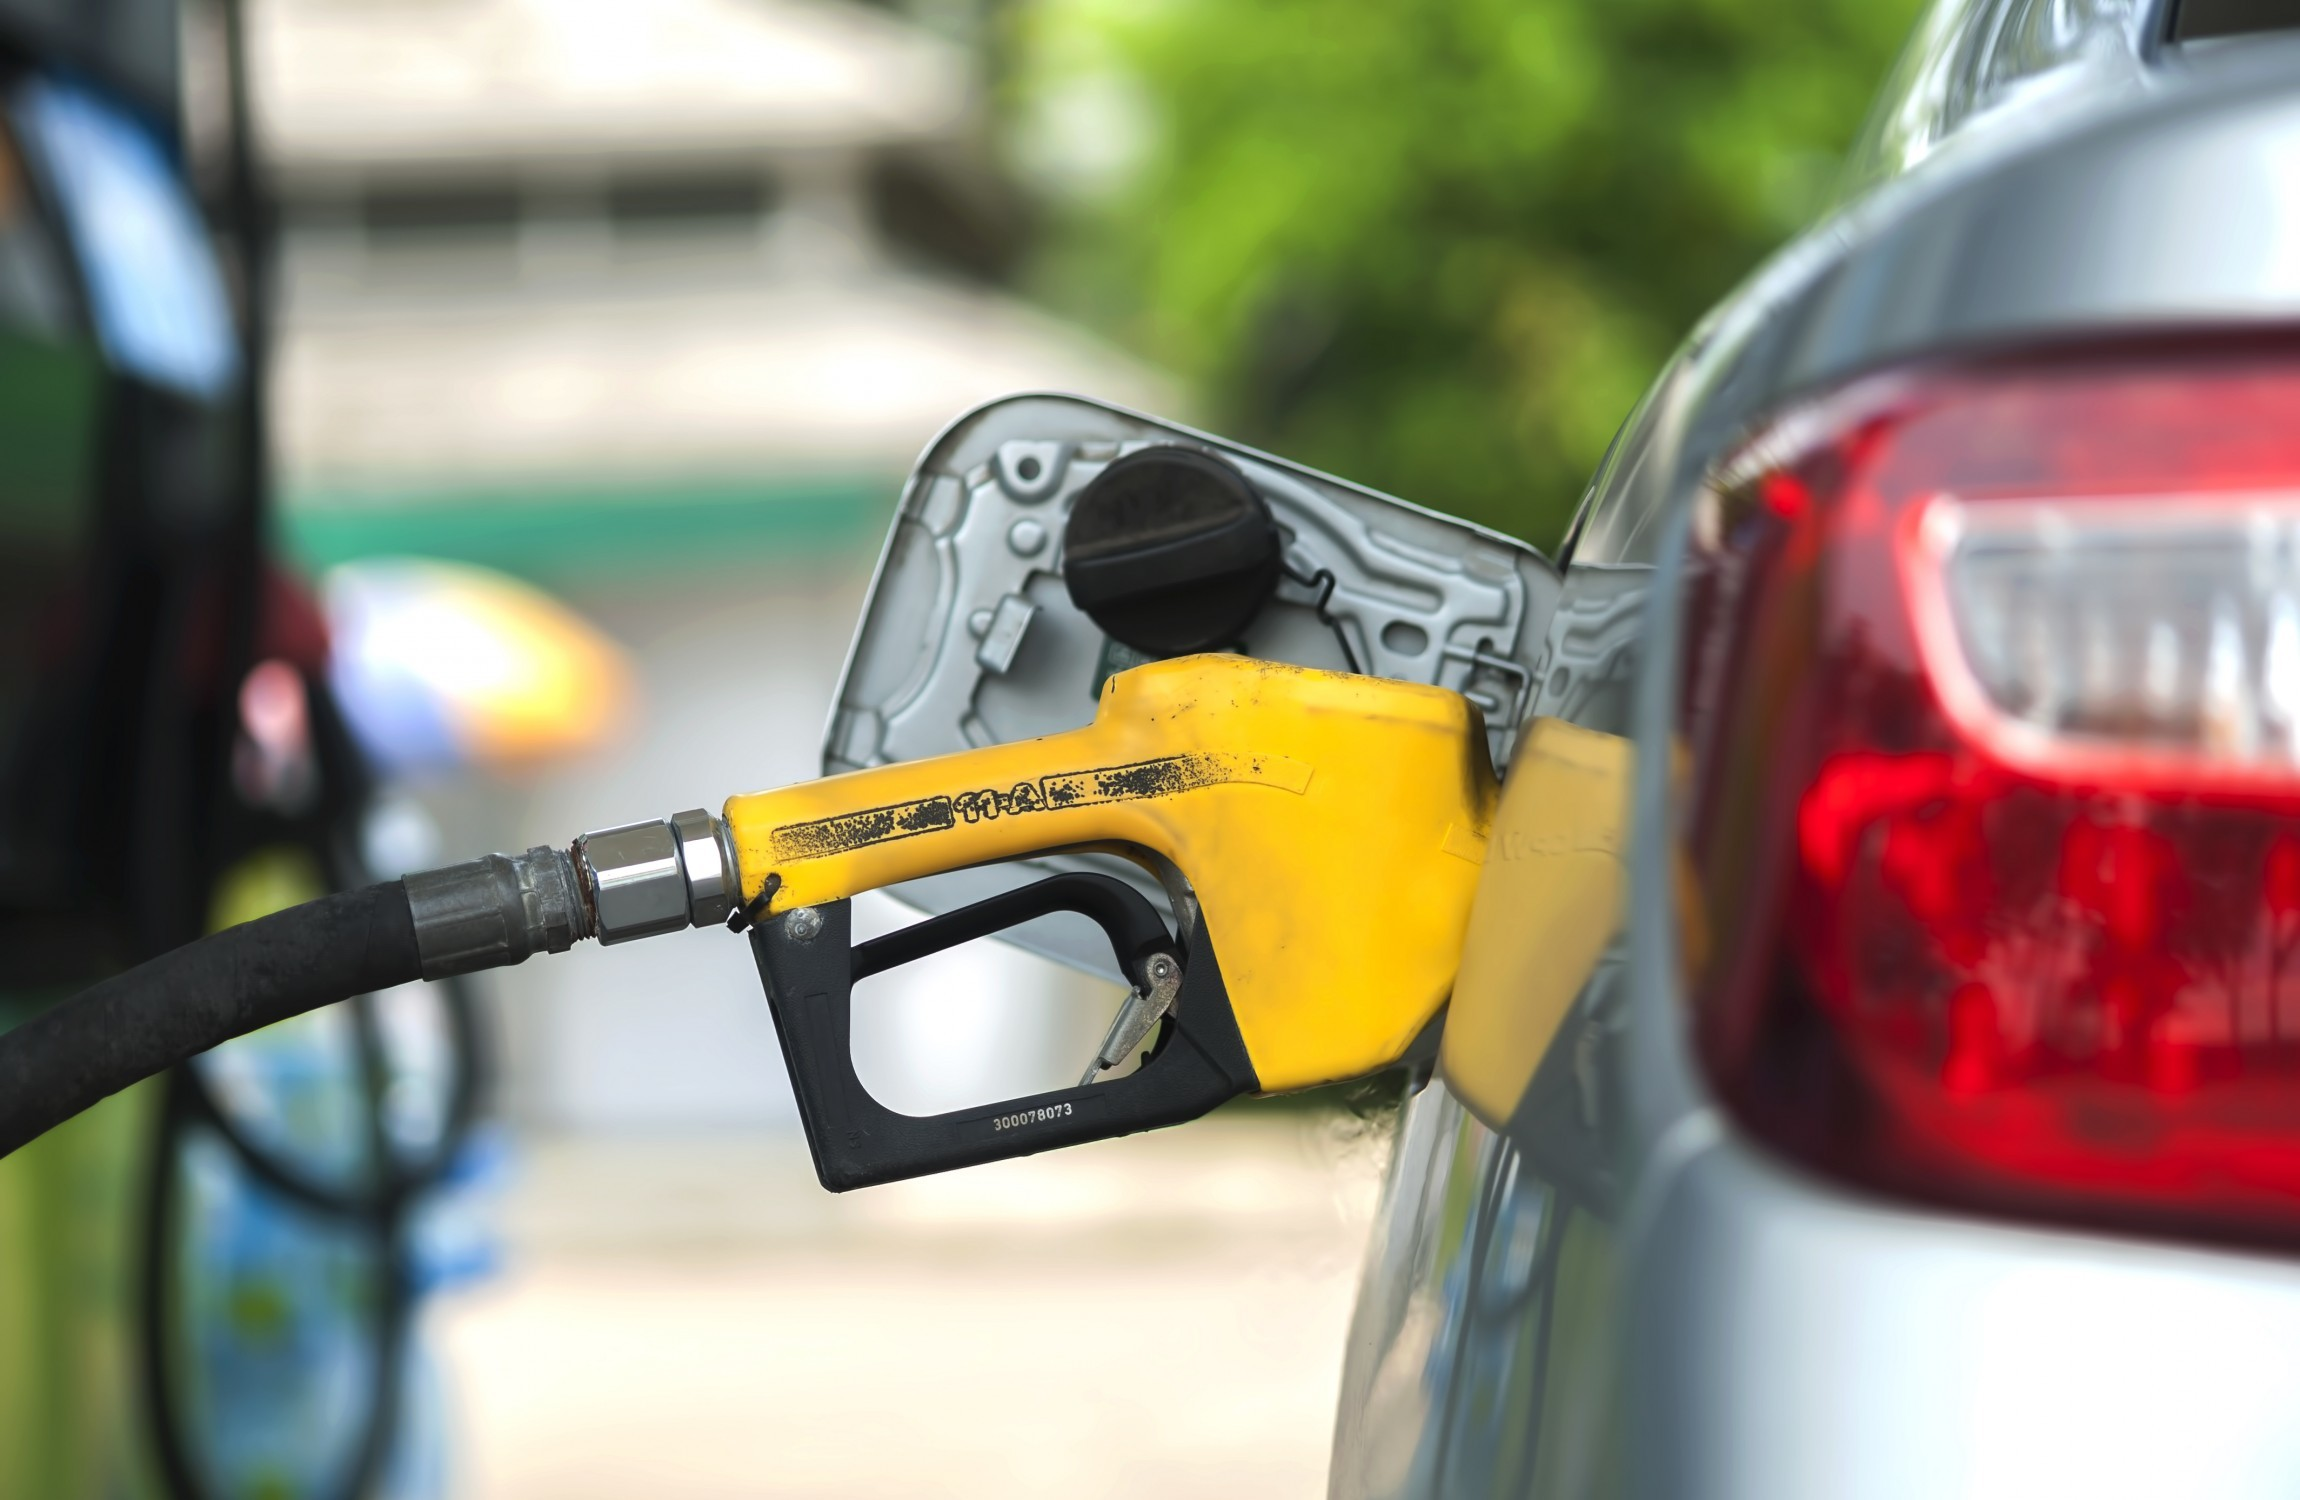 Bad Diesel Set Bad News For Irish Motorists As Petrol And Diesel Prices Set To Hike